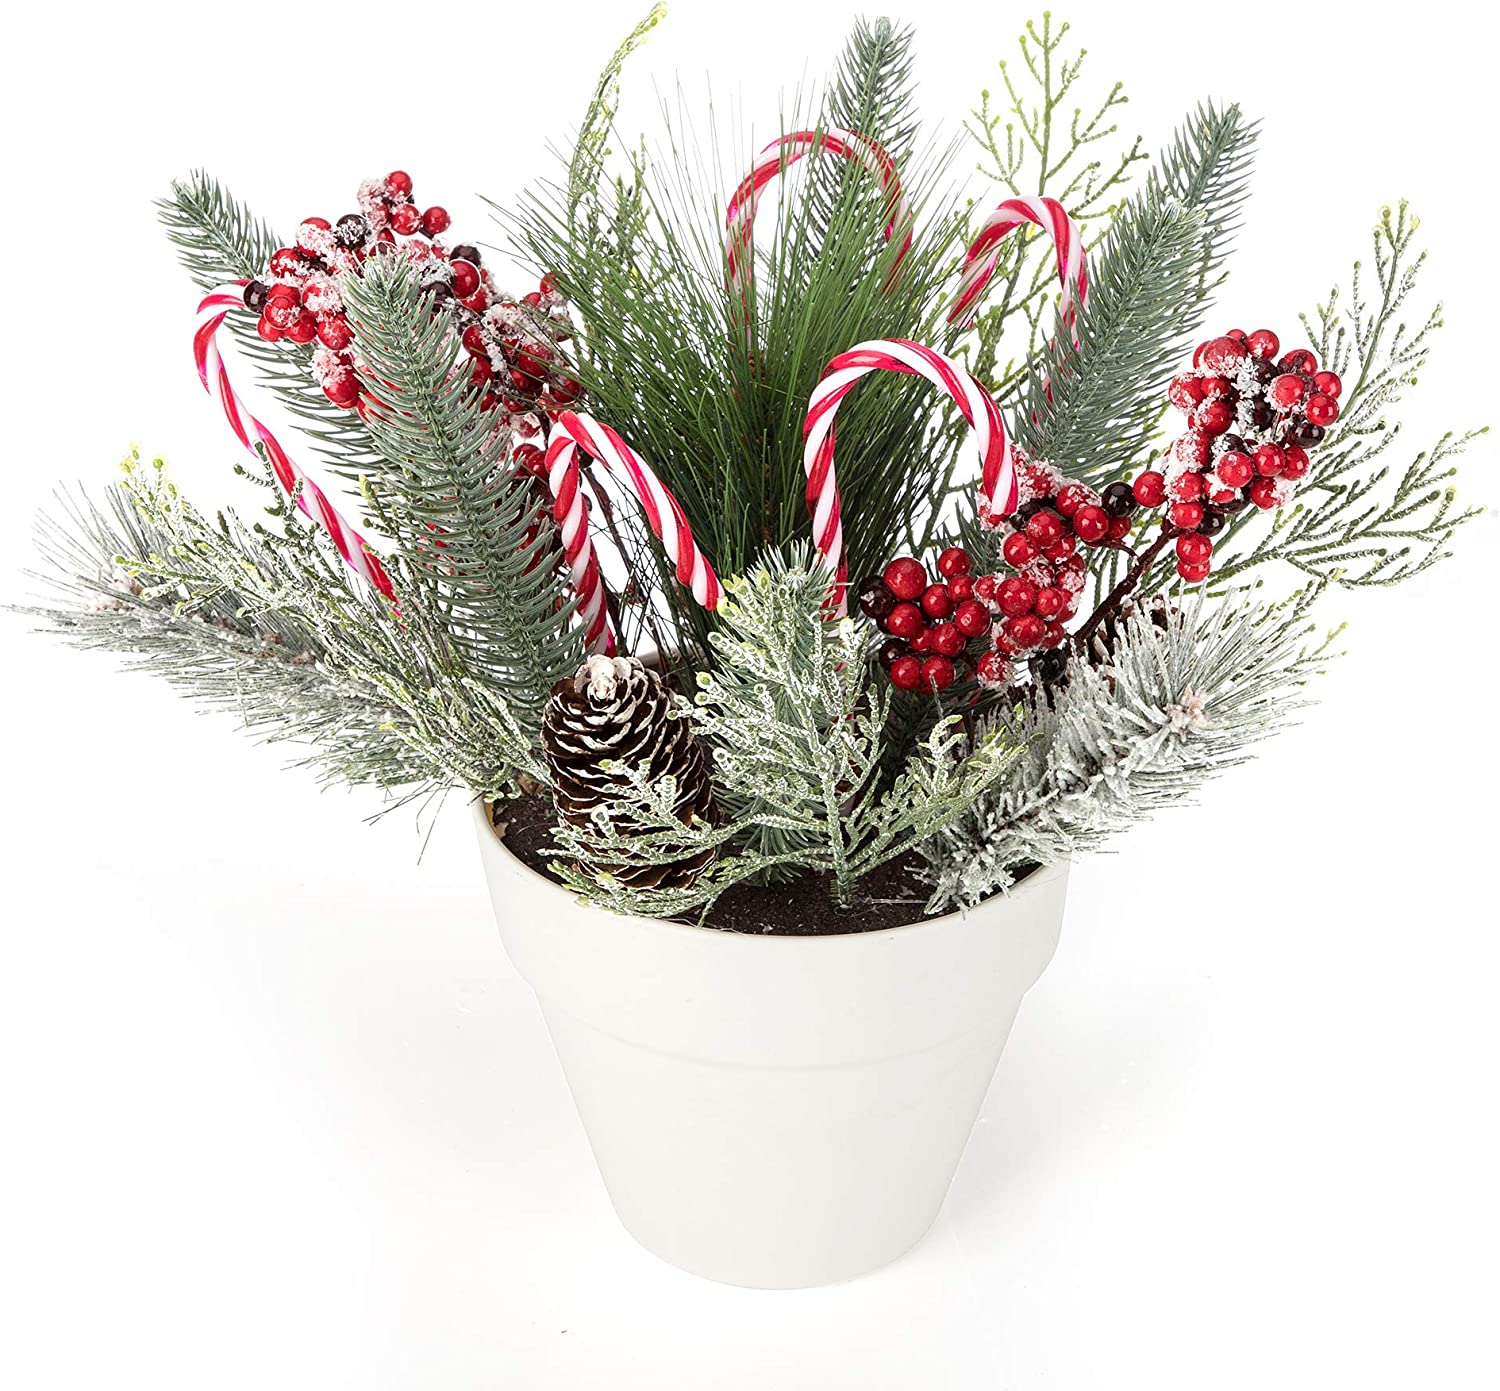 iPEGTOP 14.2 inches Holiday Tree Christmas Centerpiece Potted Tabletop Tree Artificial Plants, Christmas Crutch Plastic Candy Cane Fake Greenery Plant Pine Red Berries for Home Office Decor